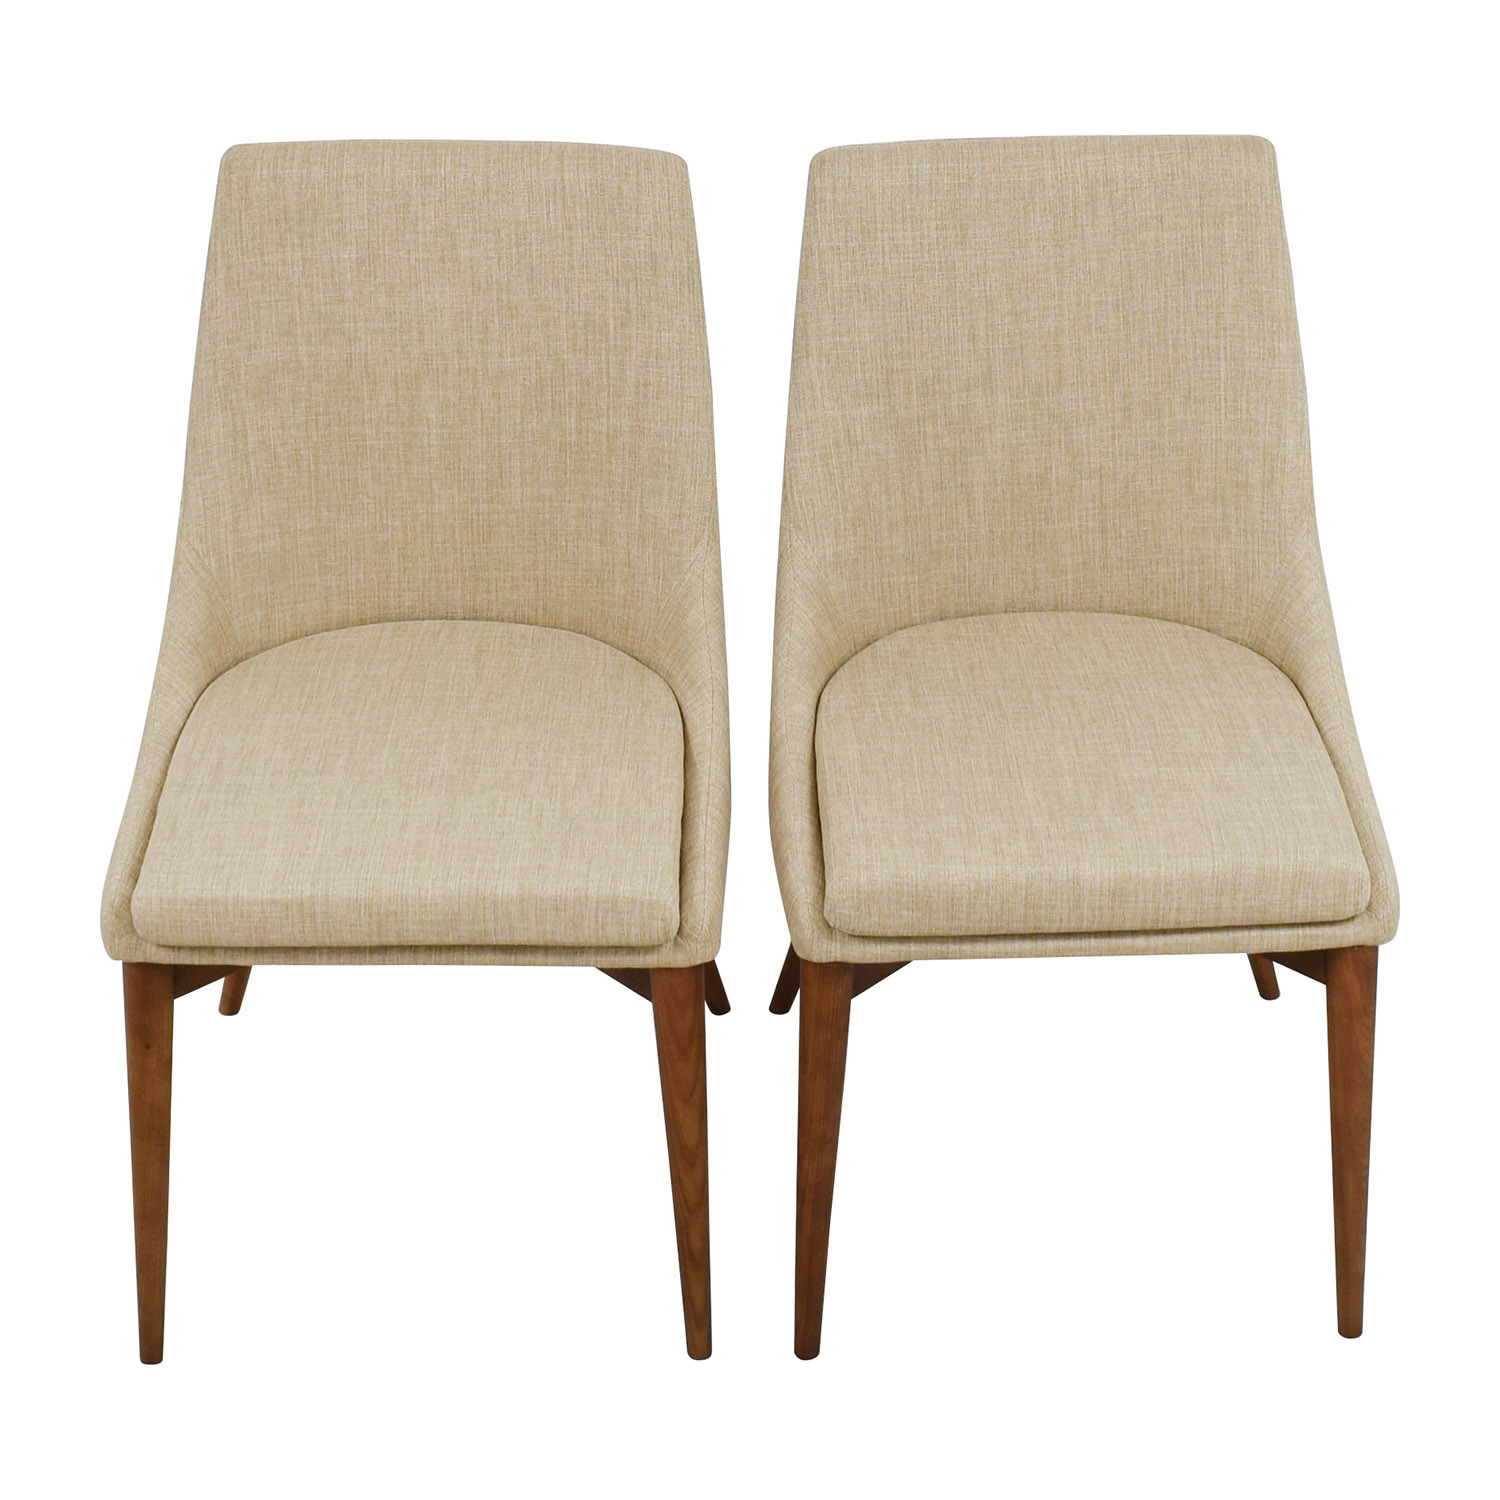 72 off inmod inmod beige calais side chairs chairs for In mod furniture